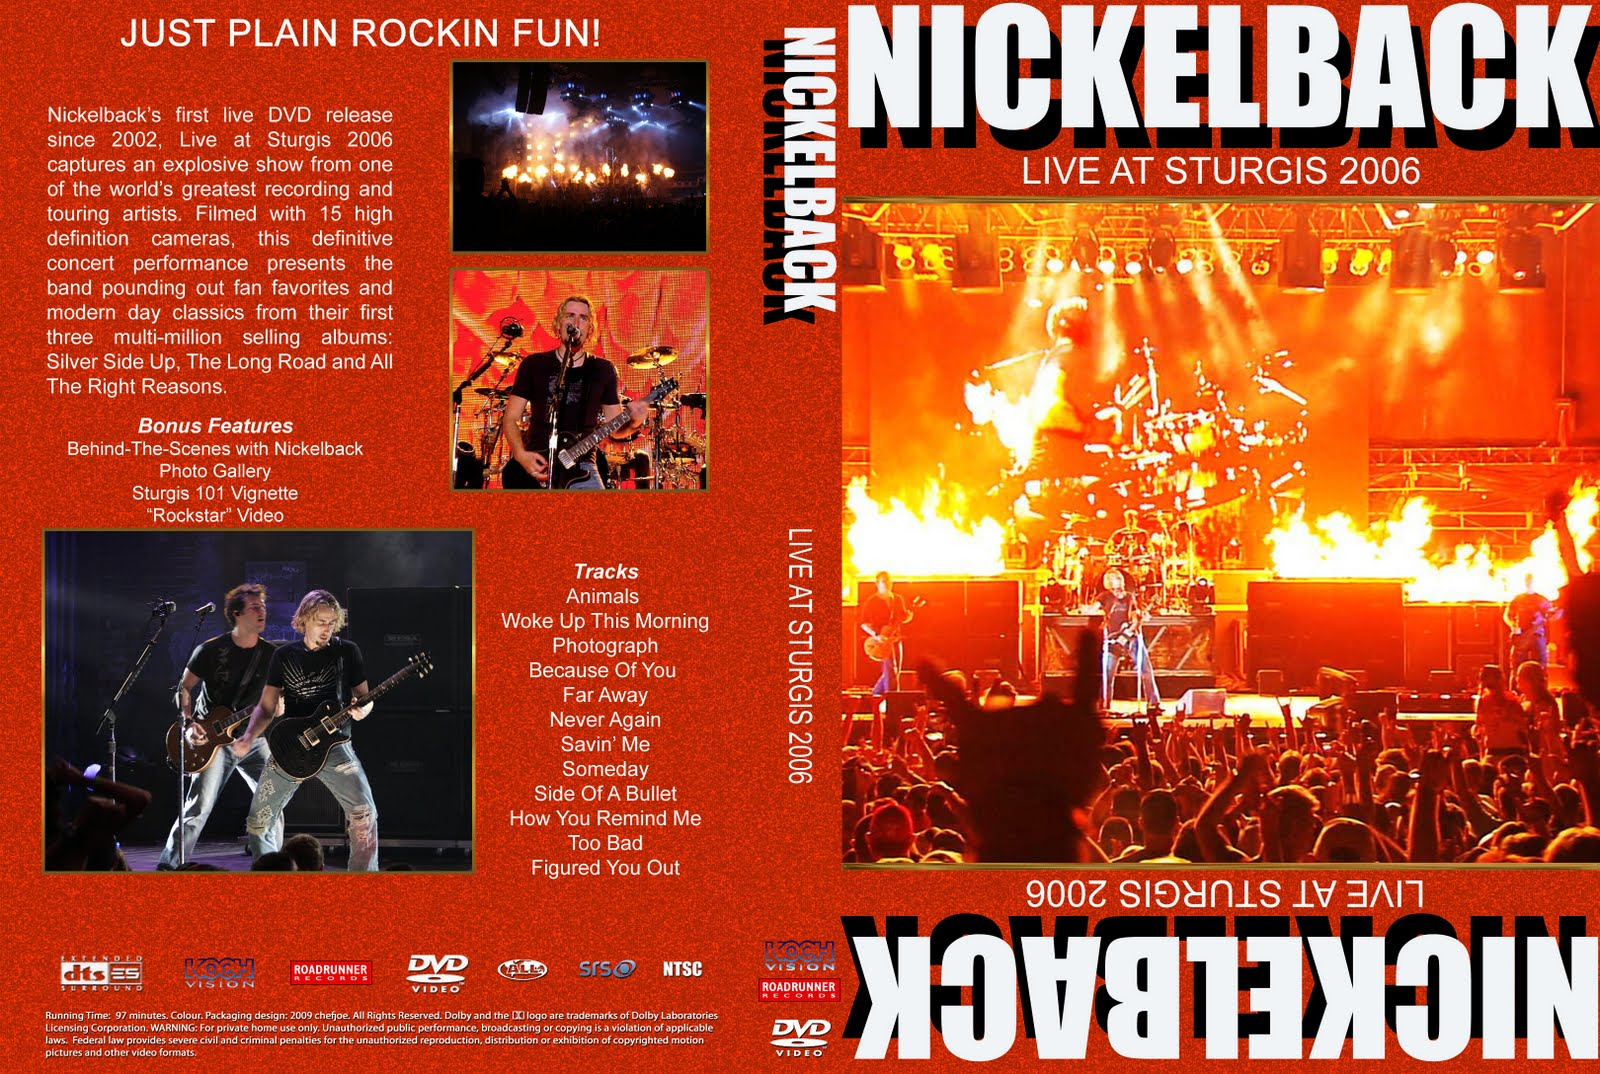 show do nickelback live at sturgis